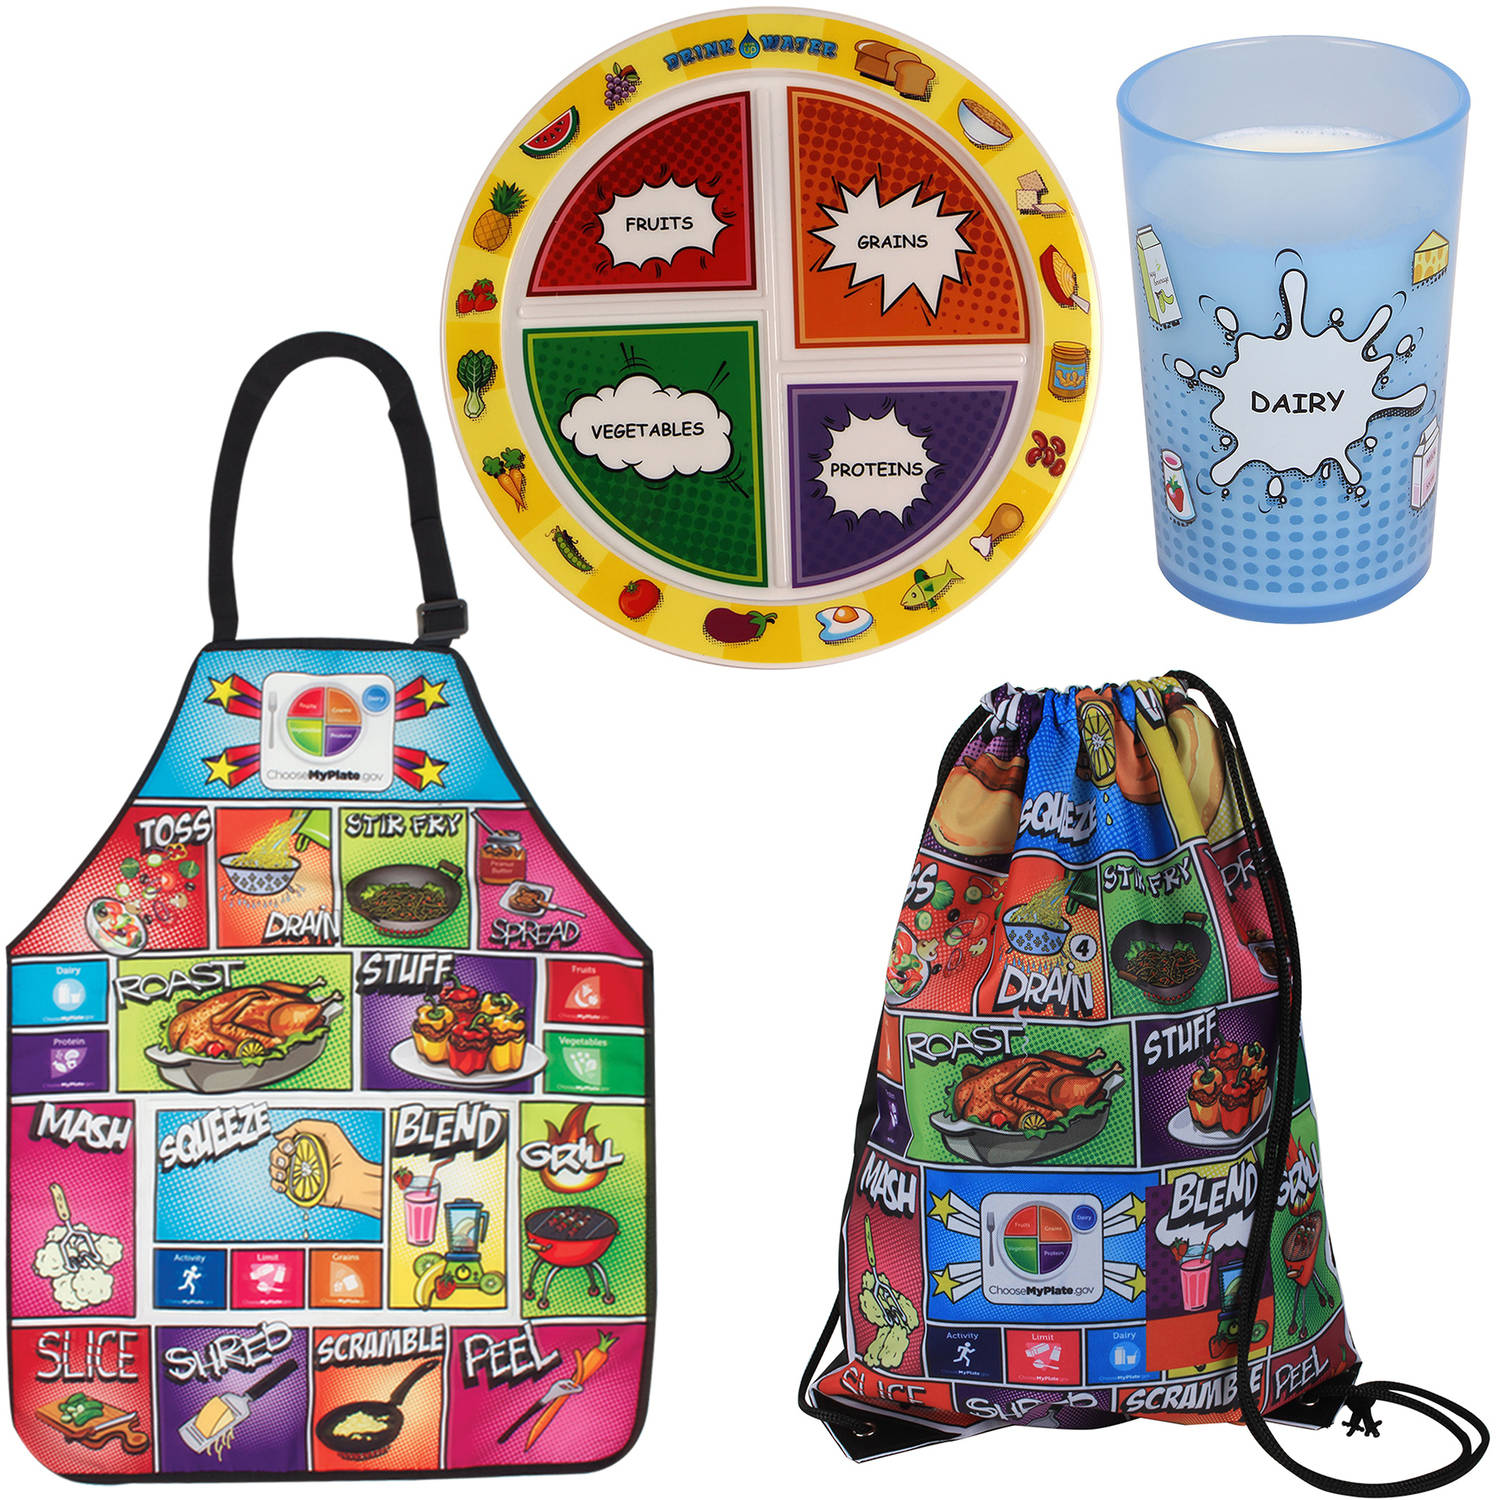 Fresh Baby MyPlate Dinnerware, Apron and Backpack Bag Set, Comic Book design